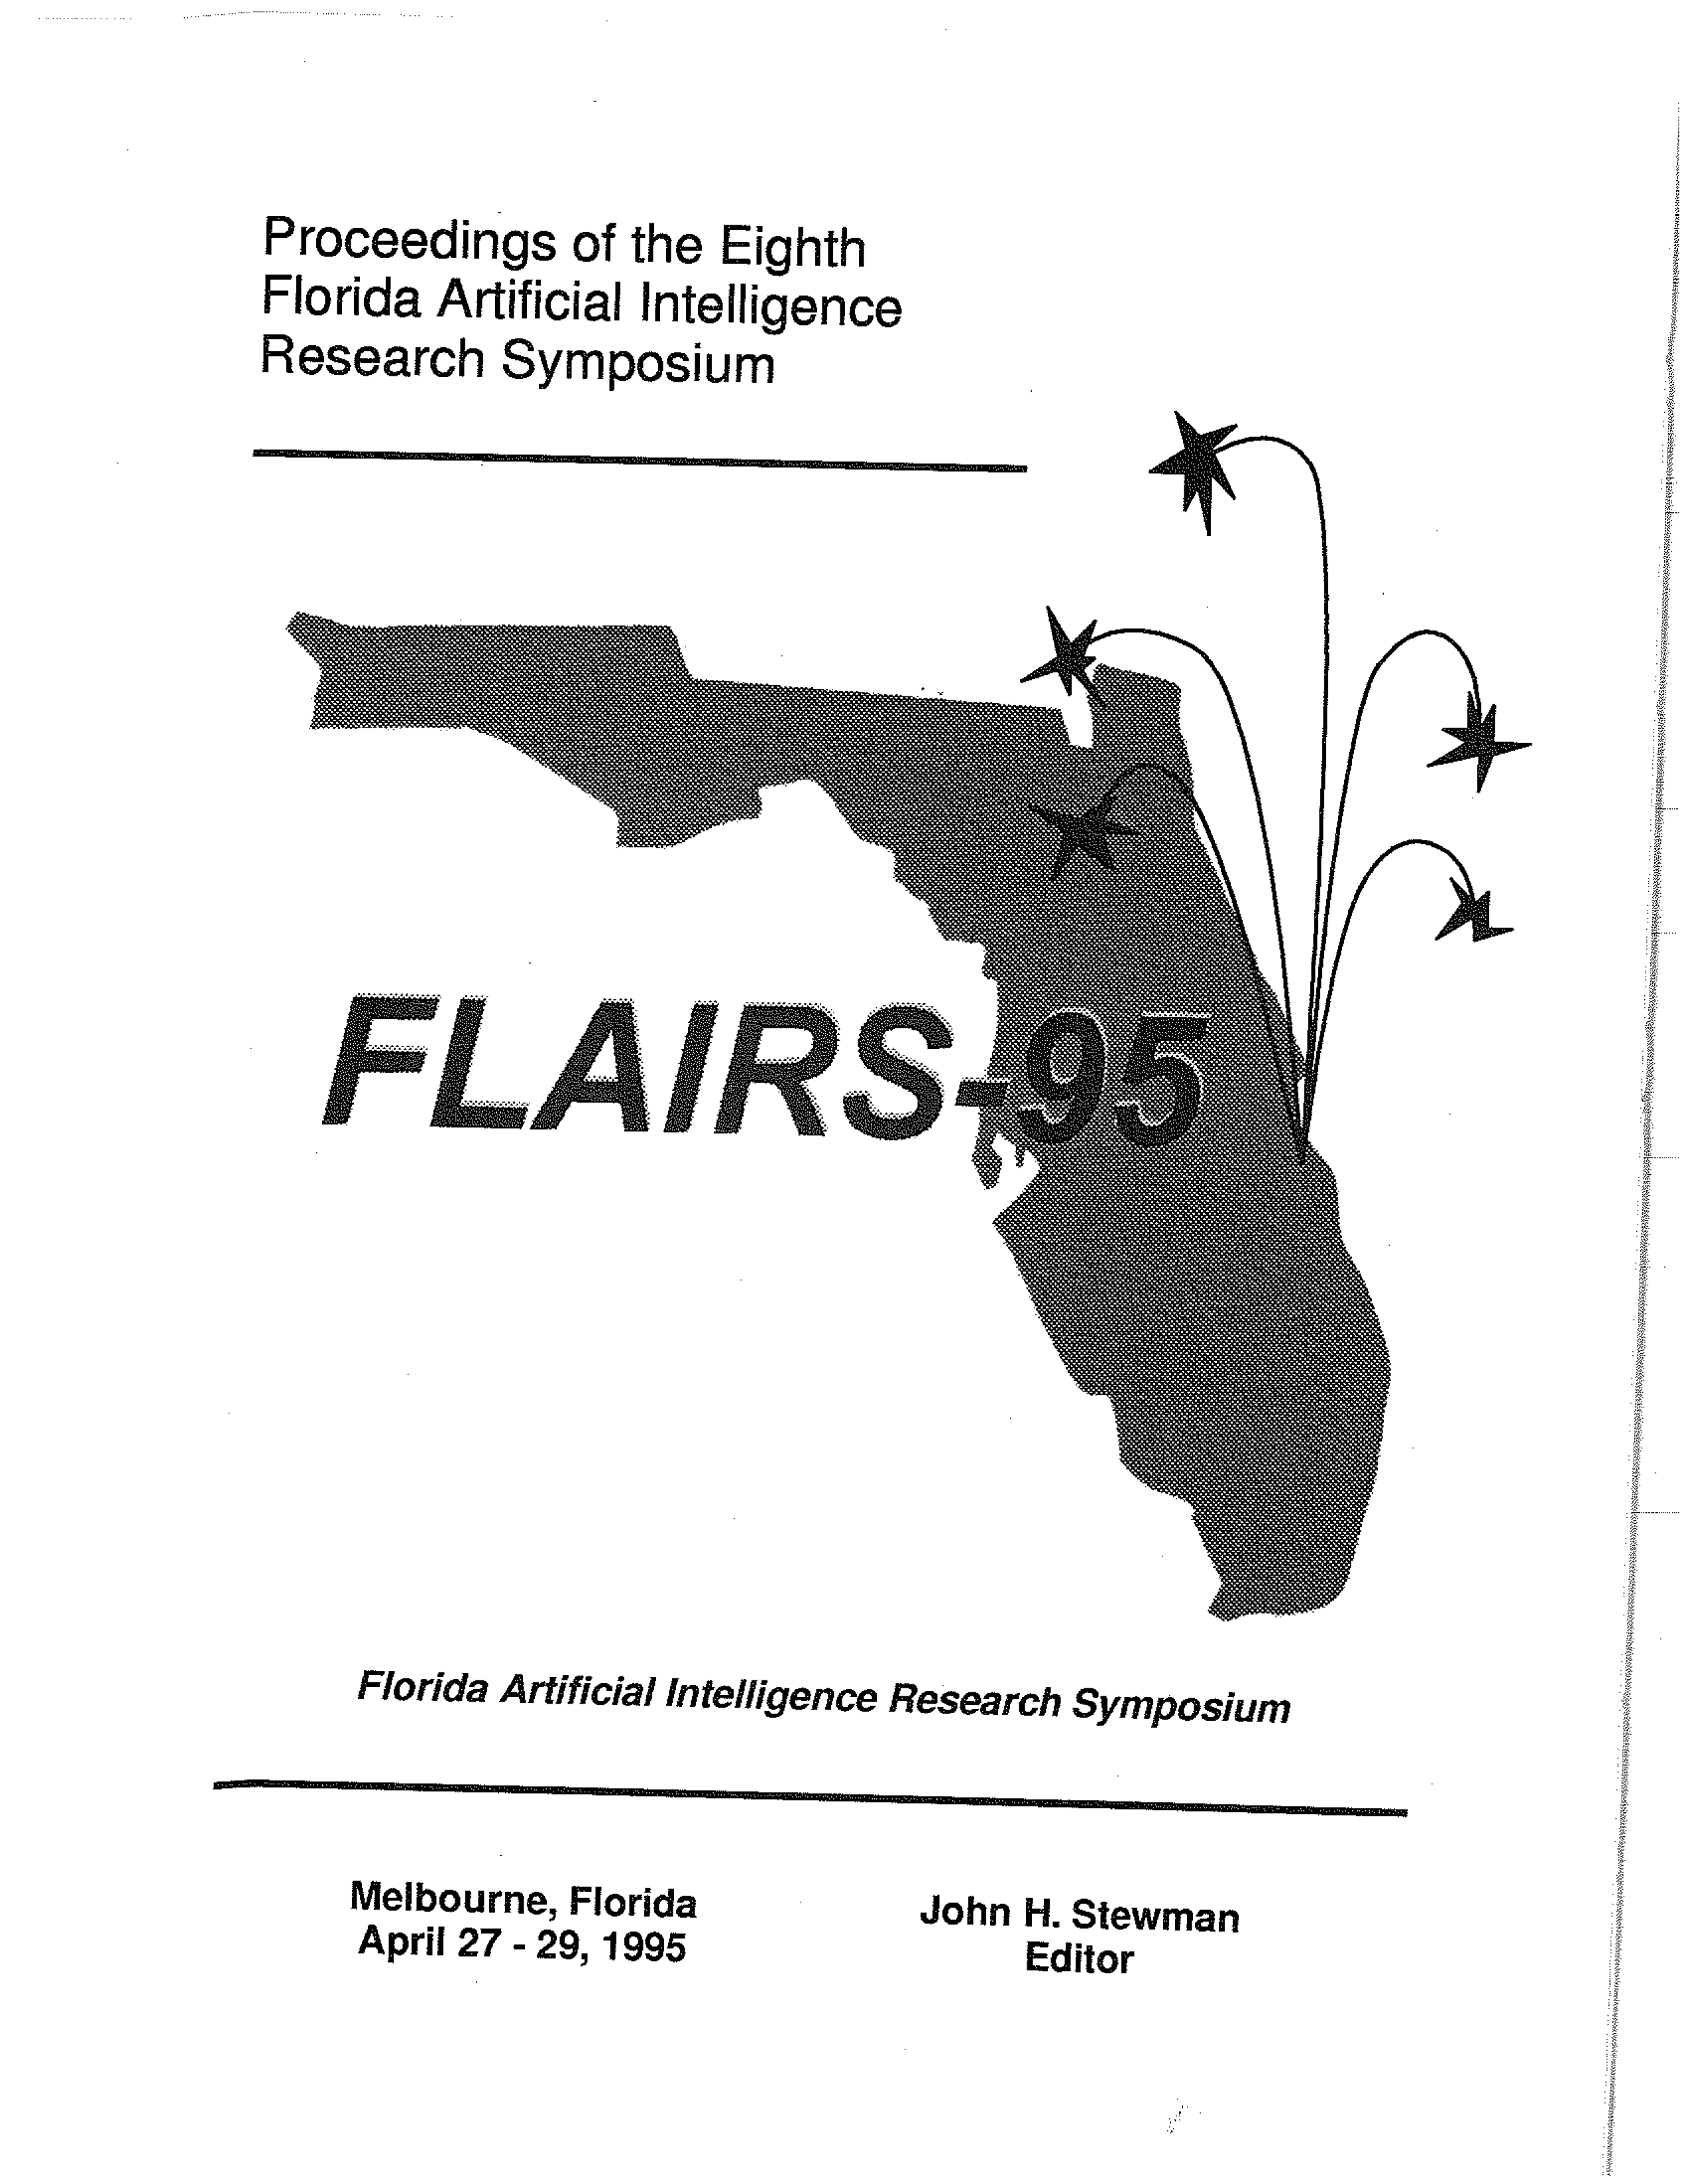 Proceedings of FLAIRS-8, cover